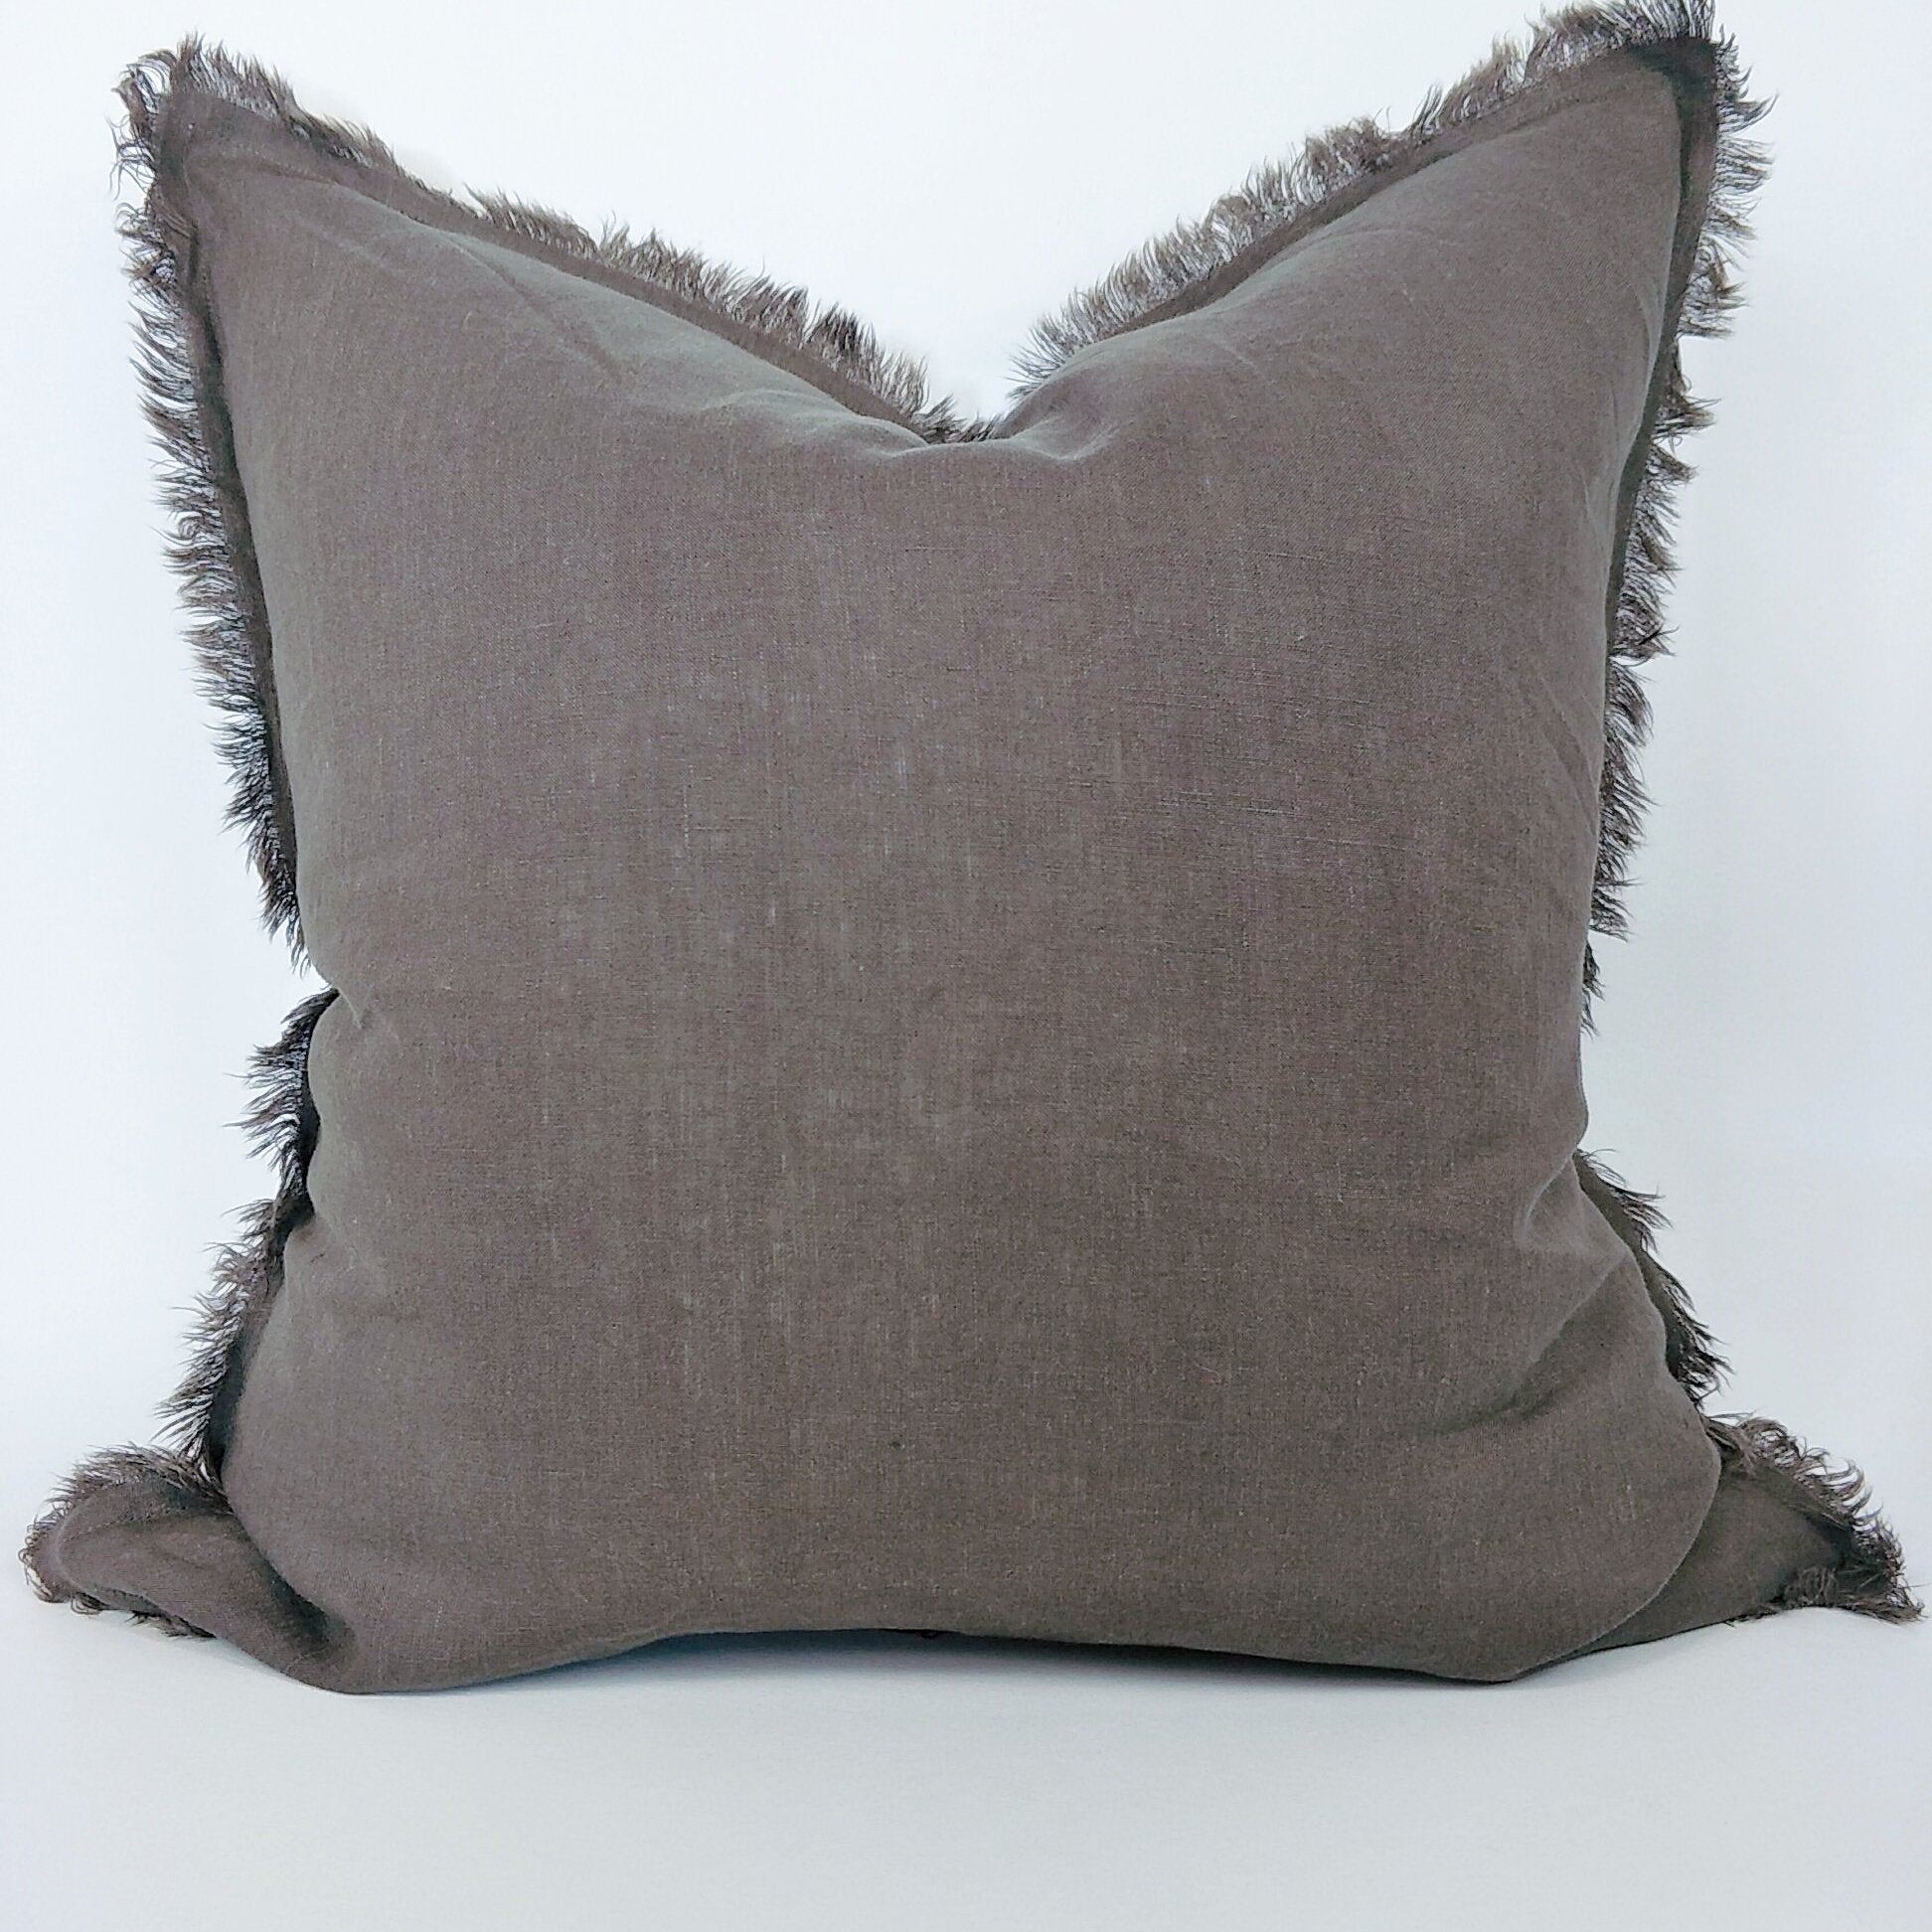 Cushion 100% French Linen Fringed Feather Inserts Mocha 50 x 50cm